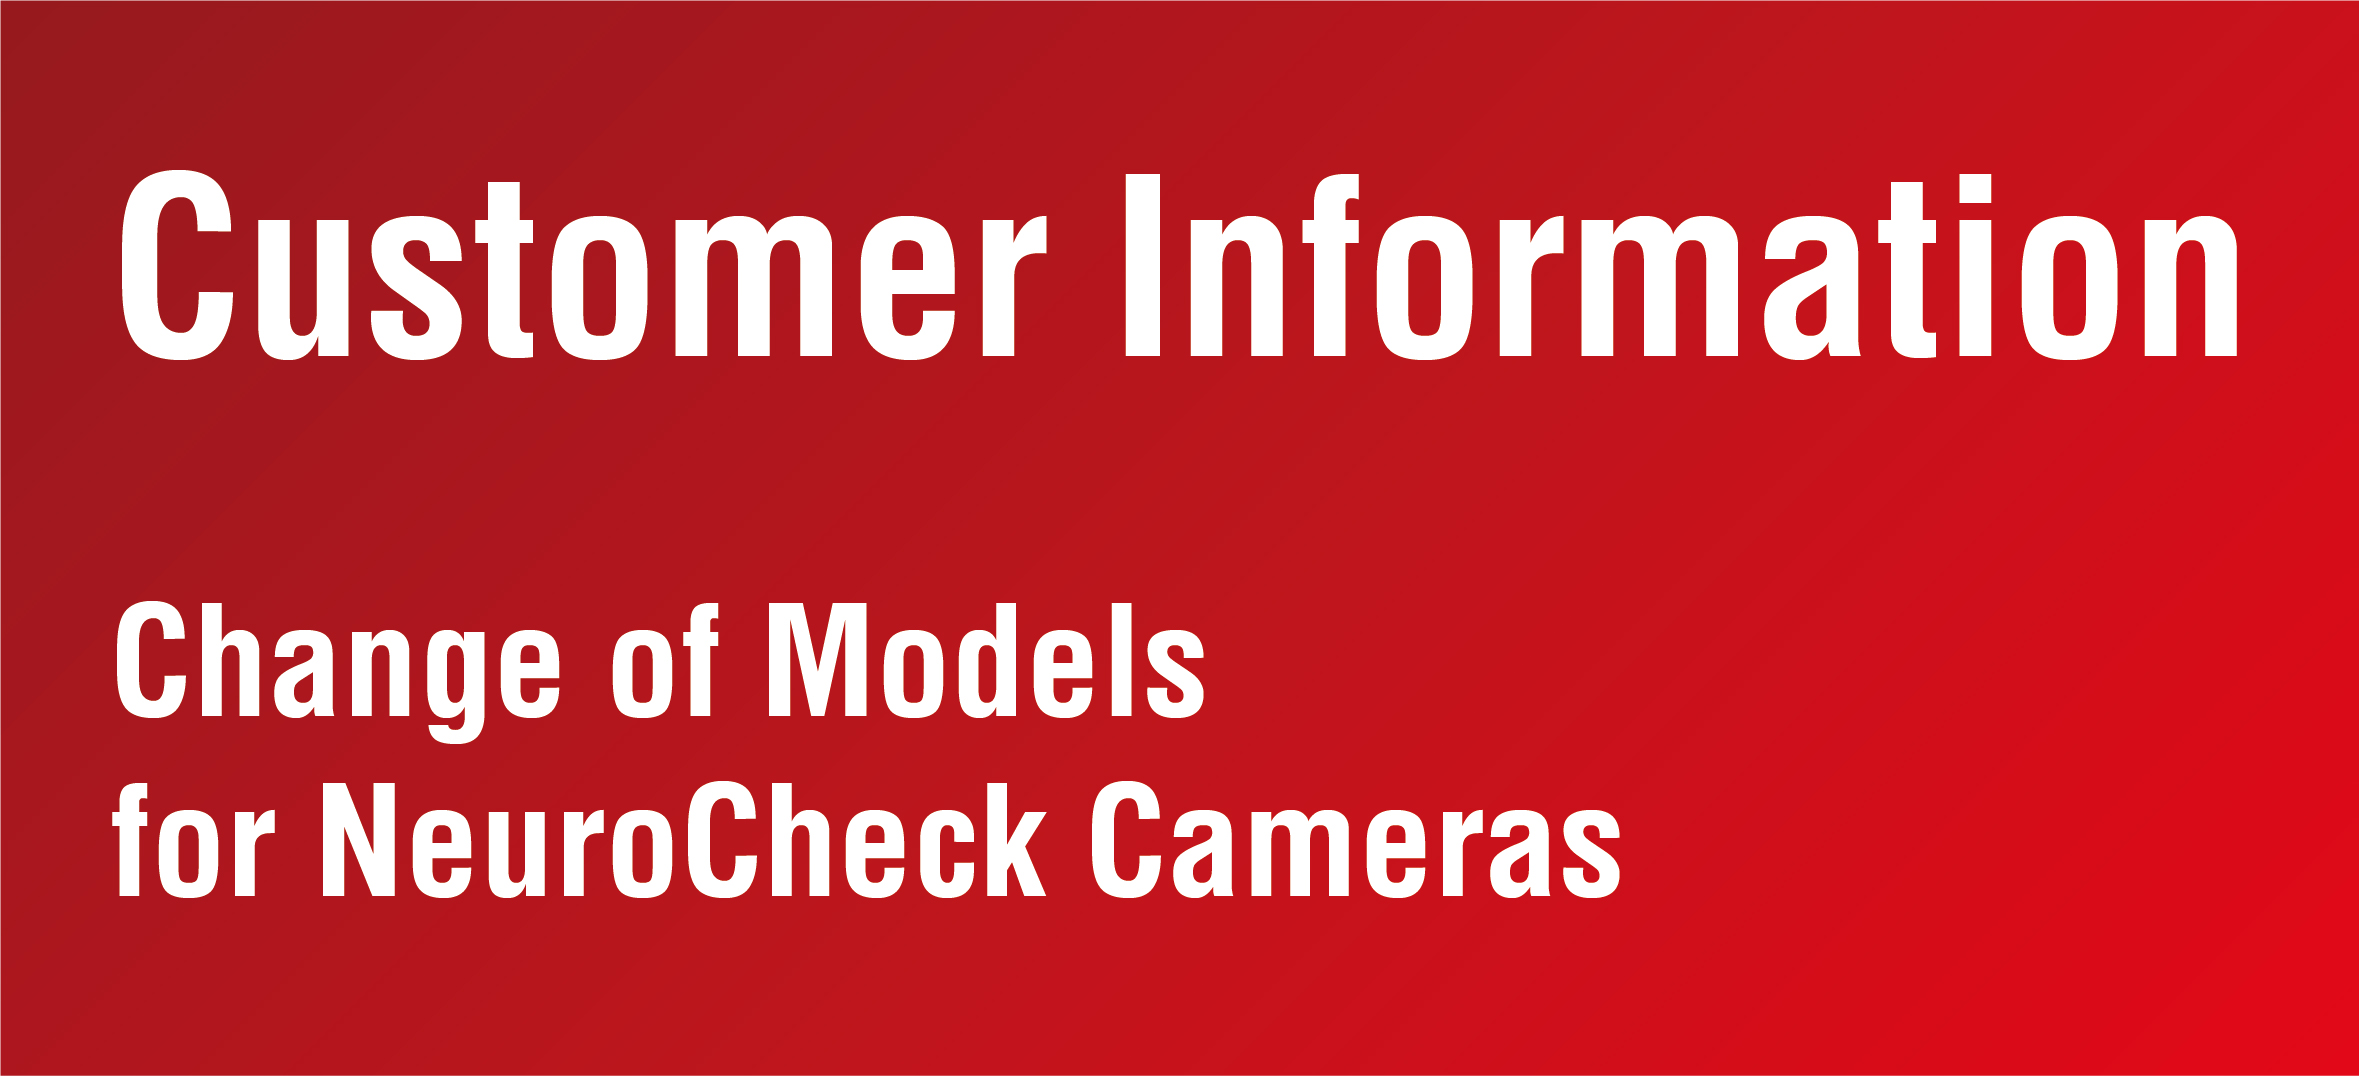 NeuroCheck Customer Information Change of Camera Models (Image © NeuroCheck)